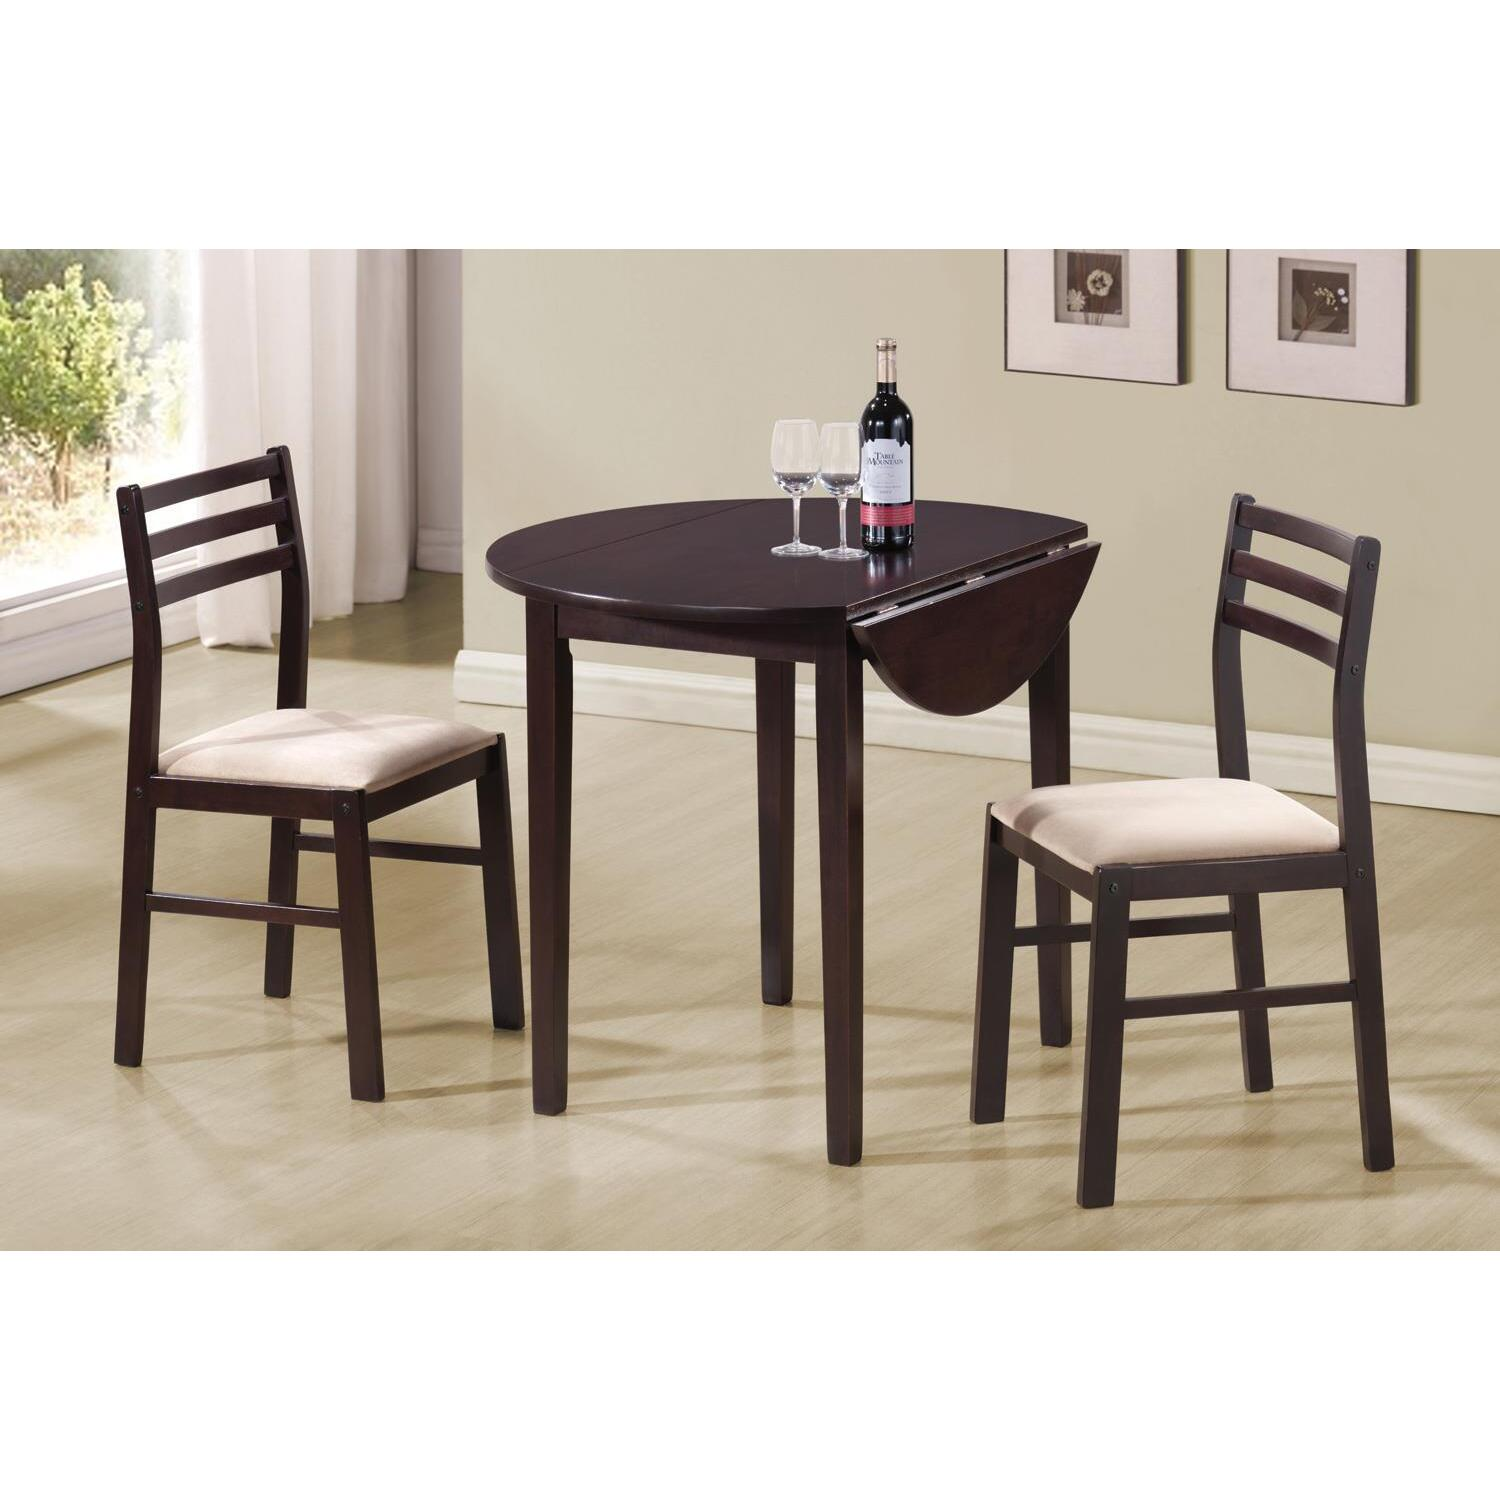 3 piece dining set ojcommerce